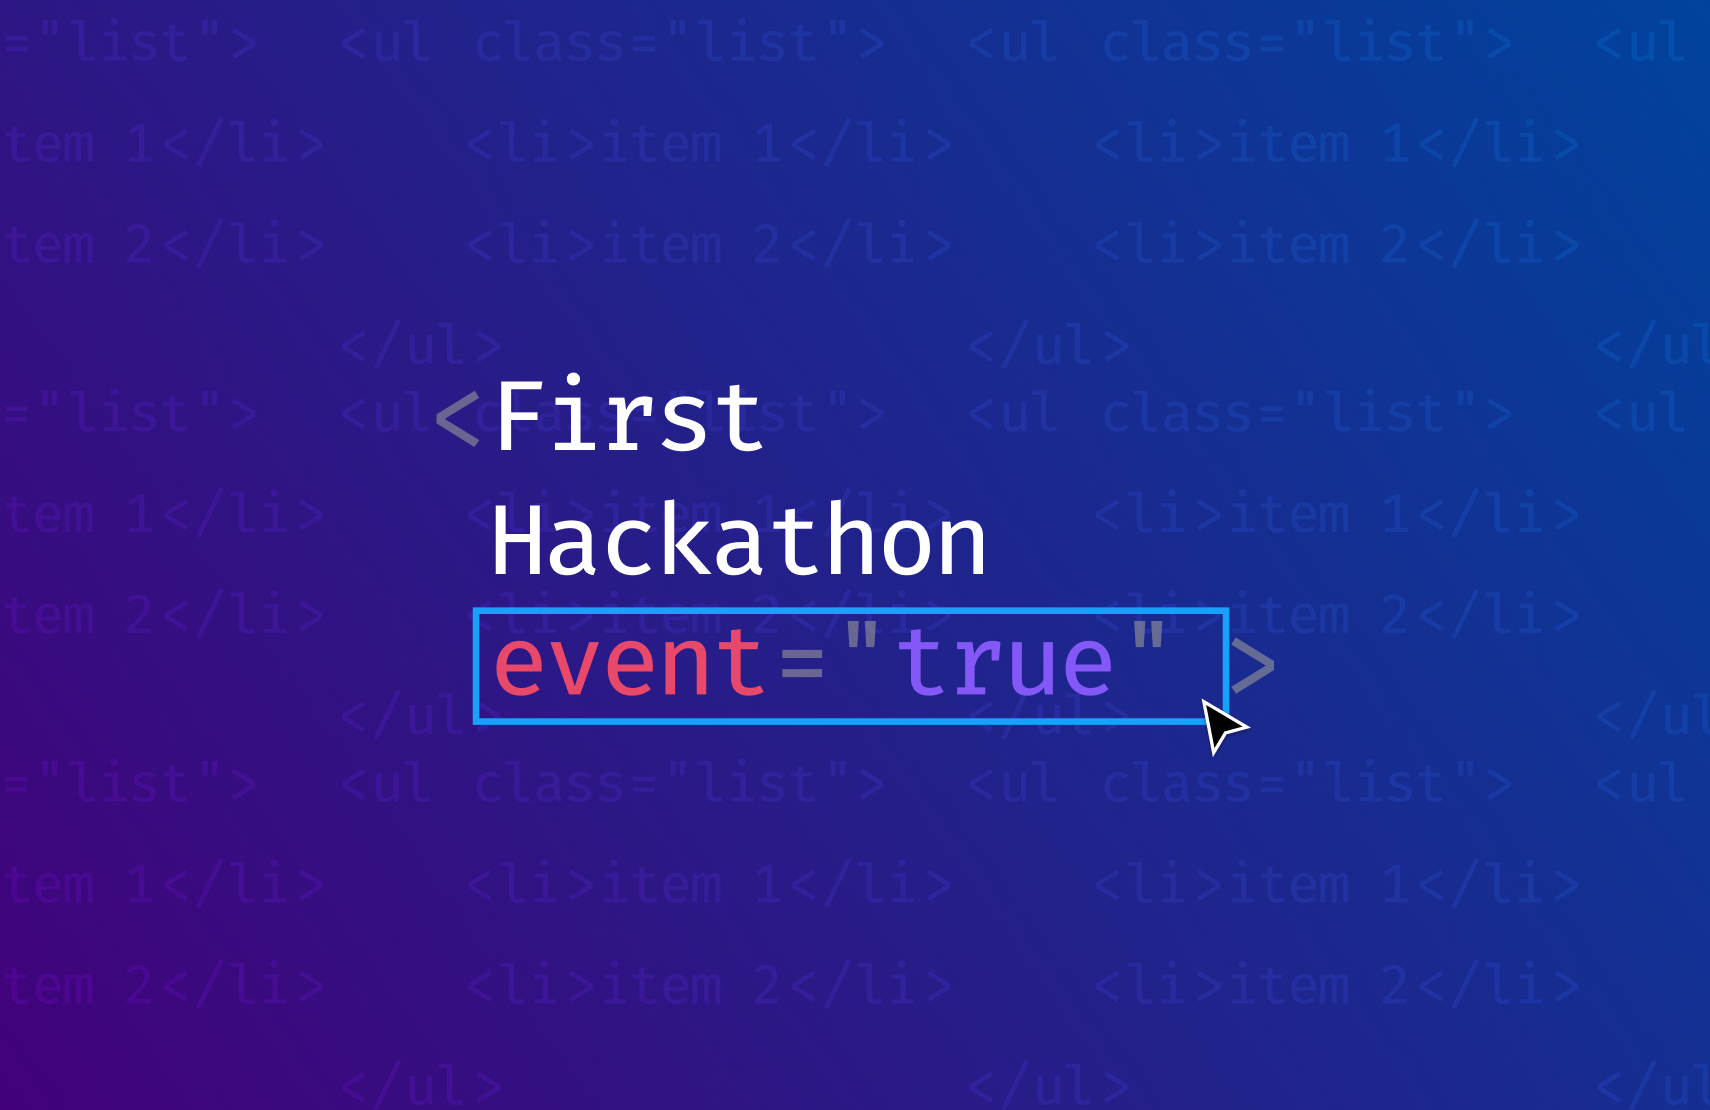 Running Our First Hackathon for Cross-Team Connections